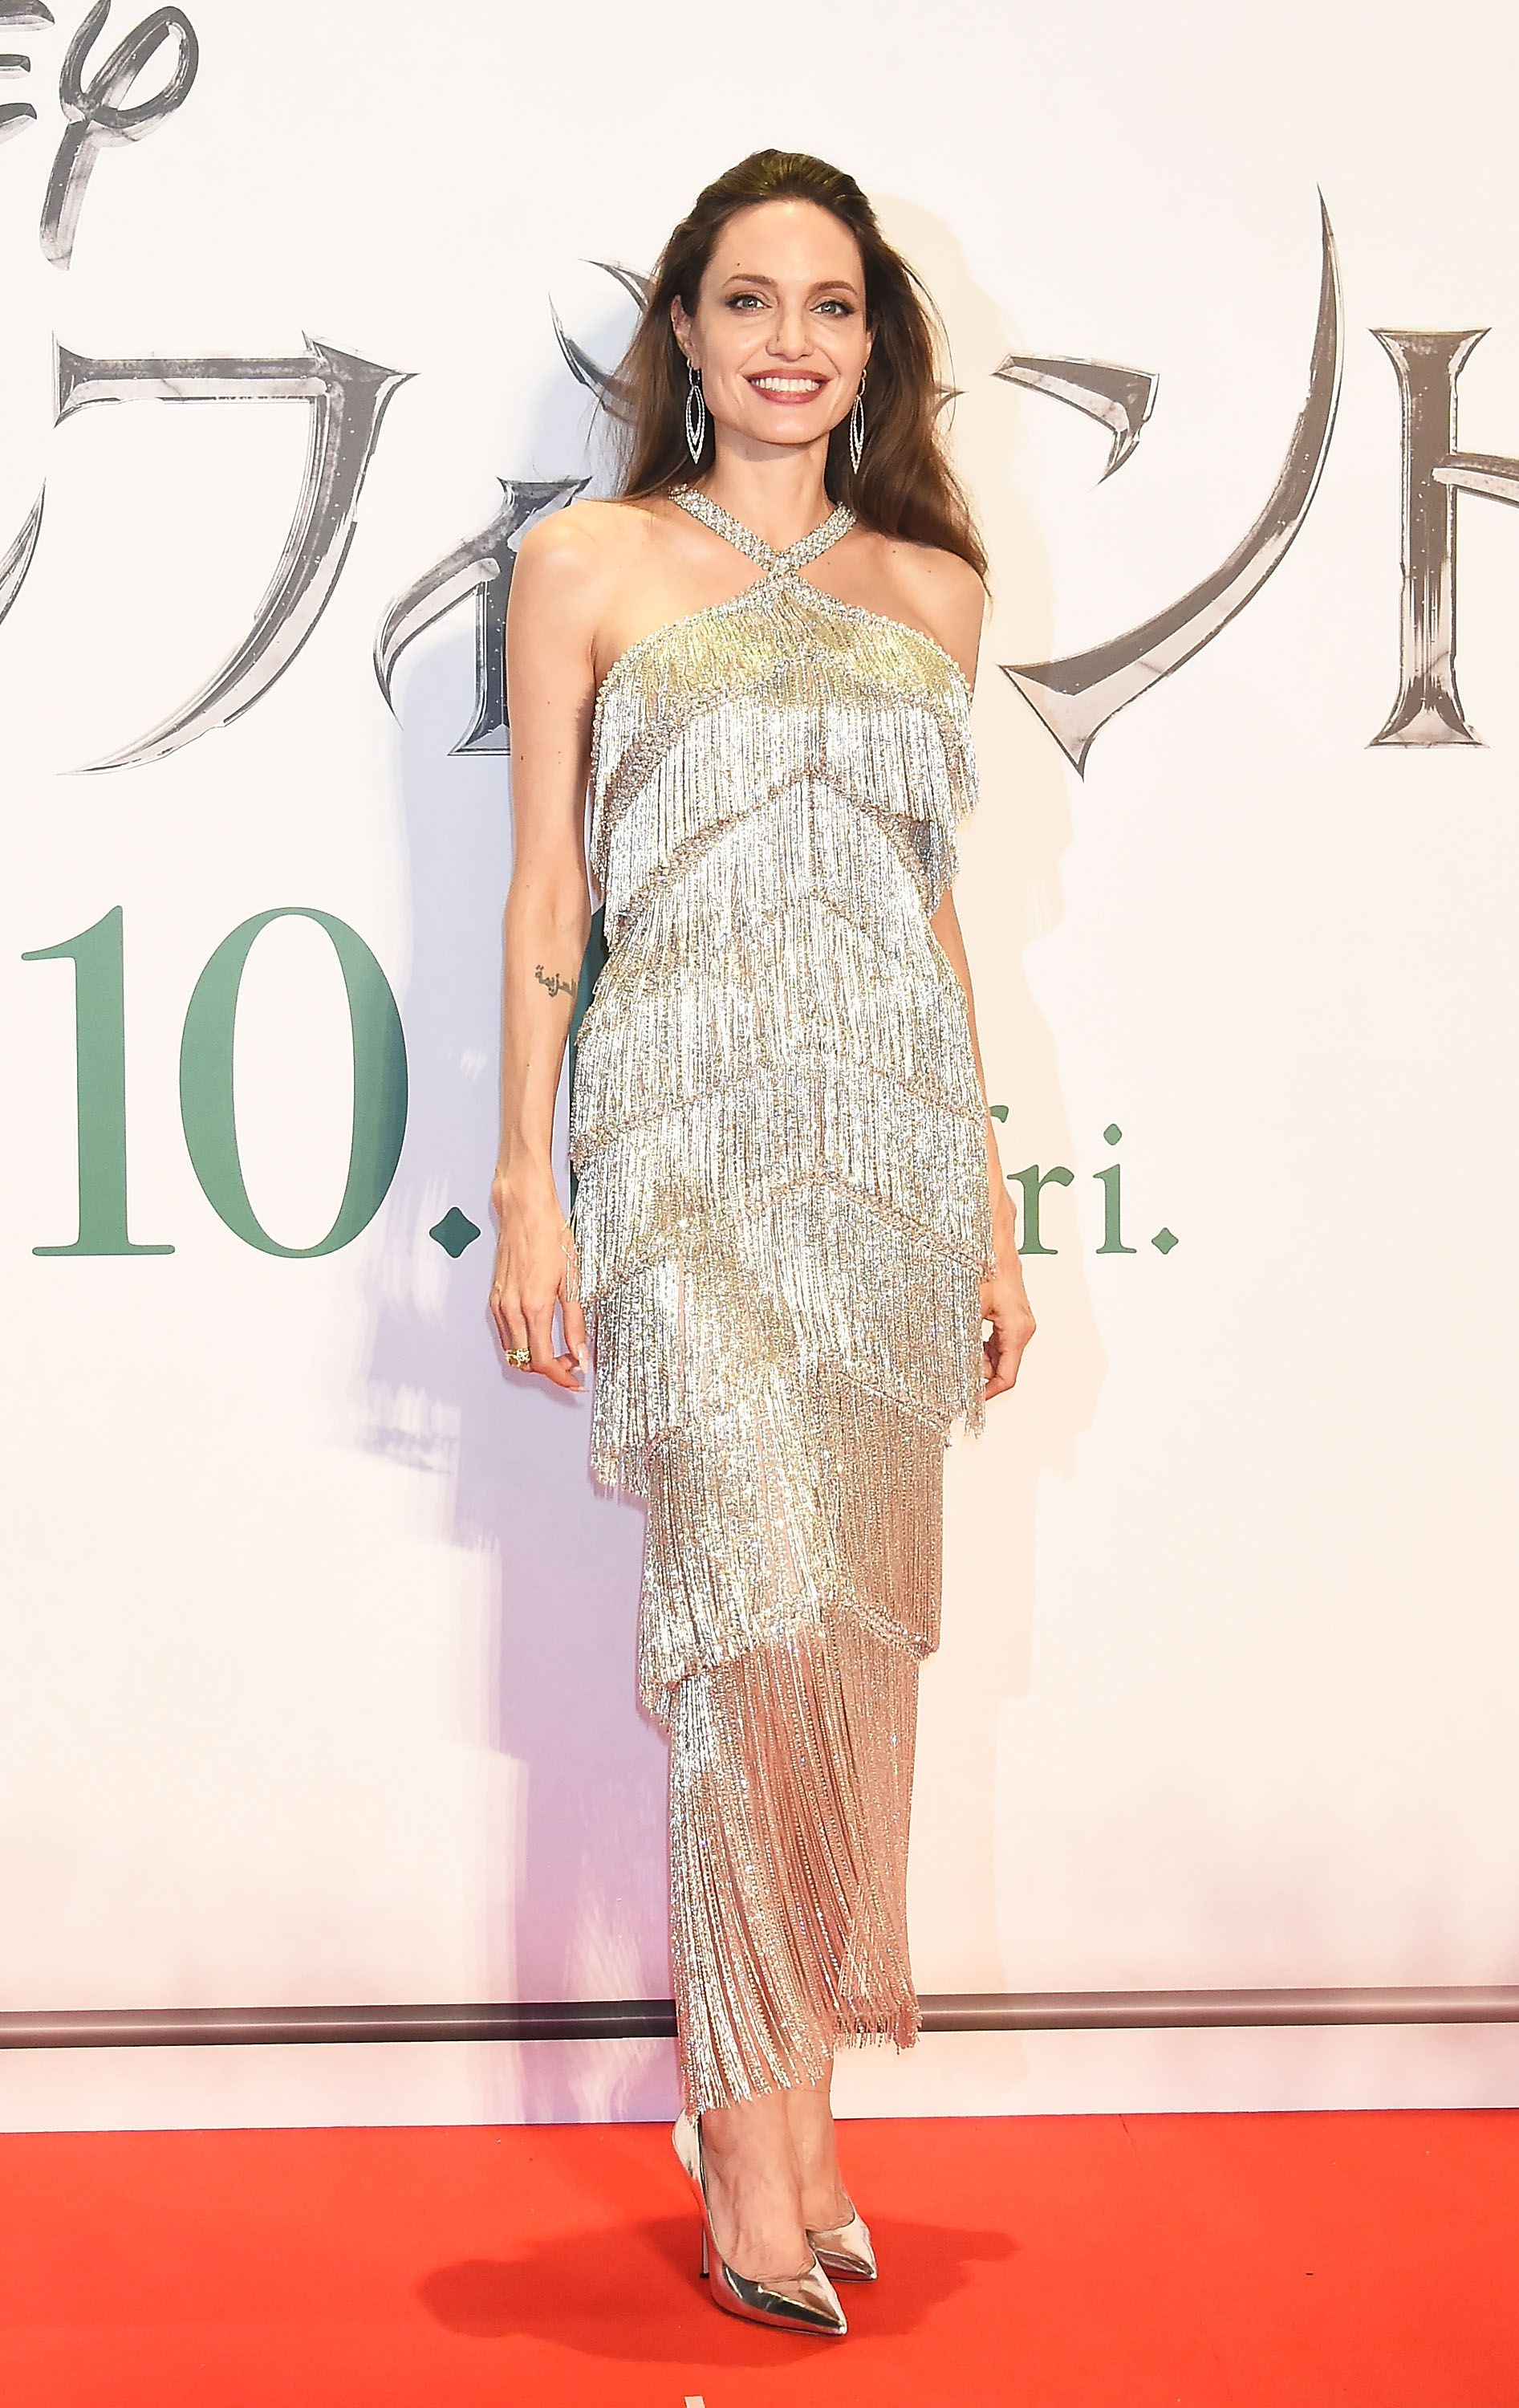 Angelina Jolie Stuns In Metallic Fringe Dress At Maleficent